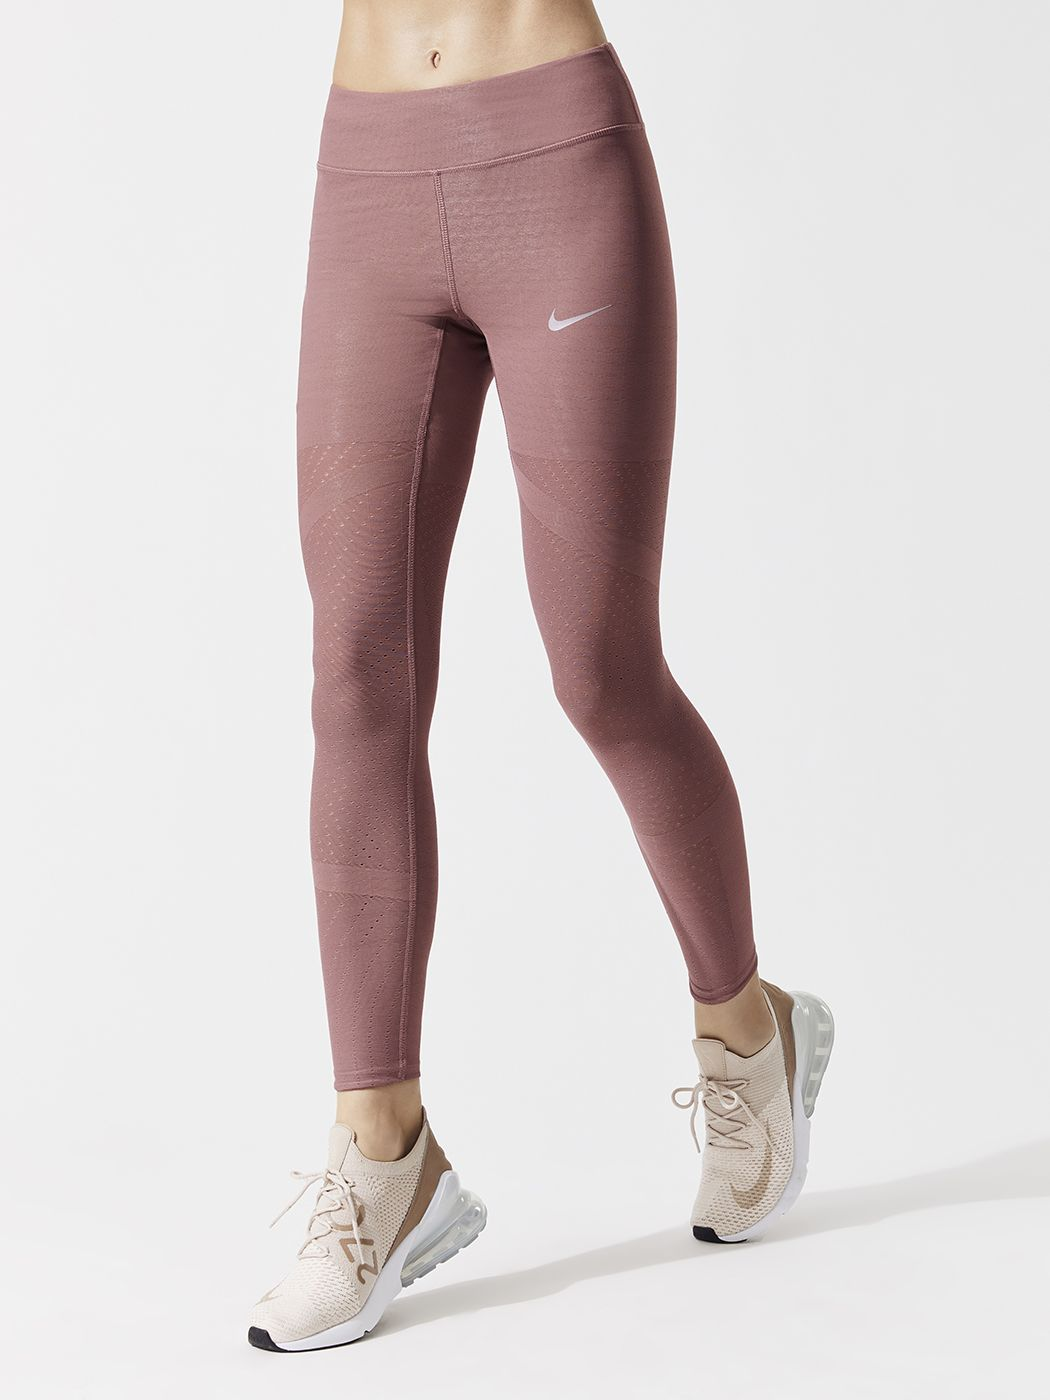 1fcd695c3a339 W Nk Epic Lx Athena Tght Leggings in Smokey Mauve by Nike from Carbon38